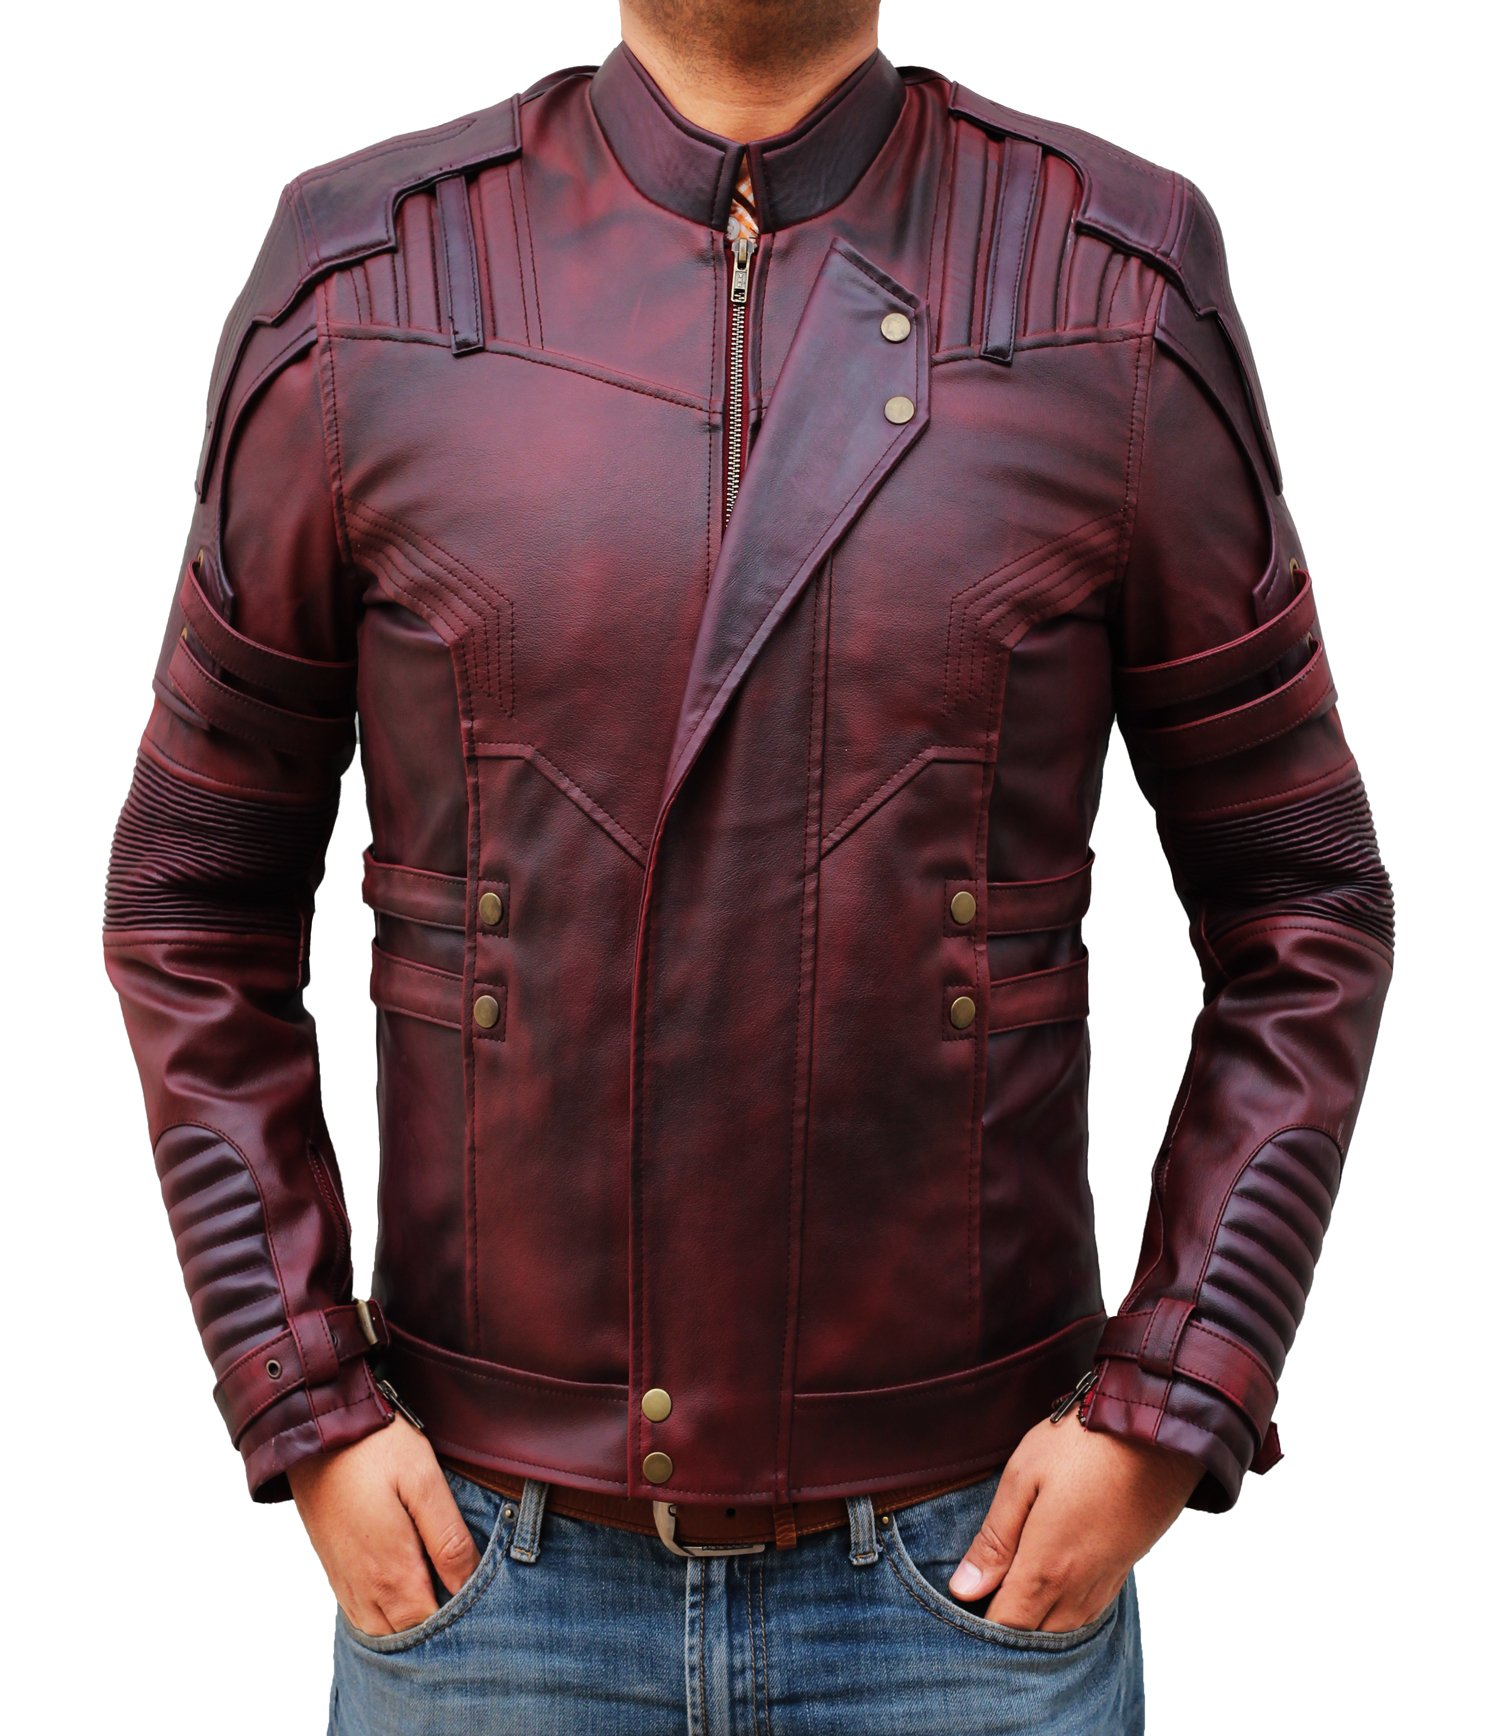 Star Lord Motorcycle Leather Jacket Boys - Star-Lord Men Slim Fit Leather Jacket for Bikers Outfit | 2XL